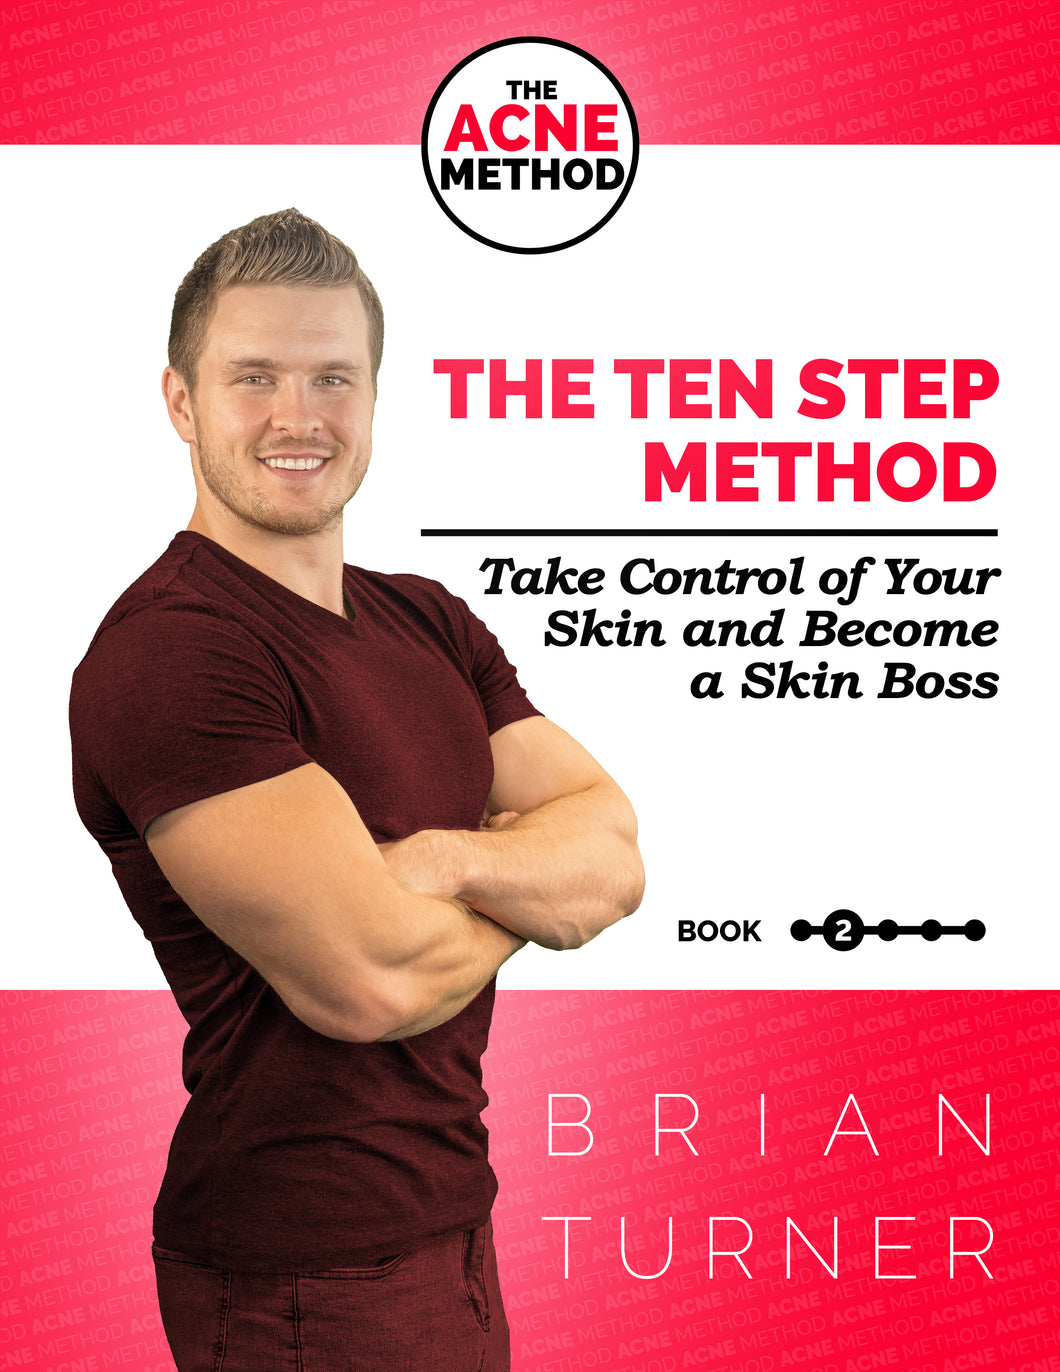 The ACNE Method - The Ten Step Method